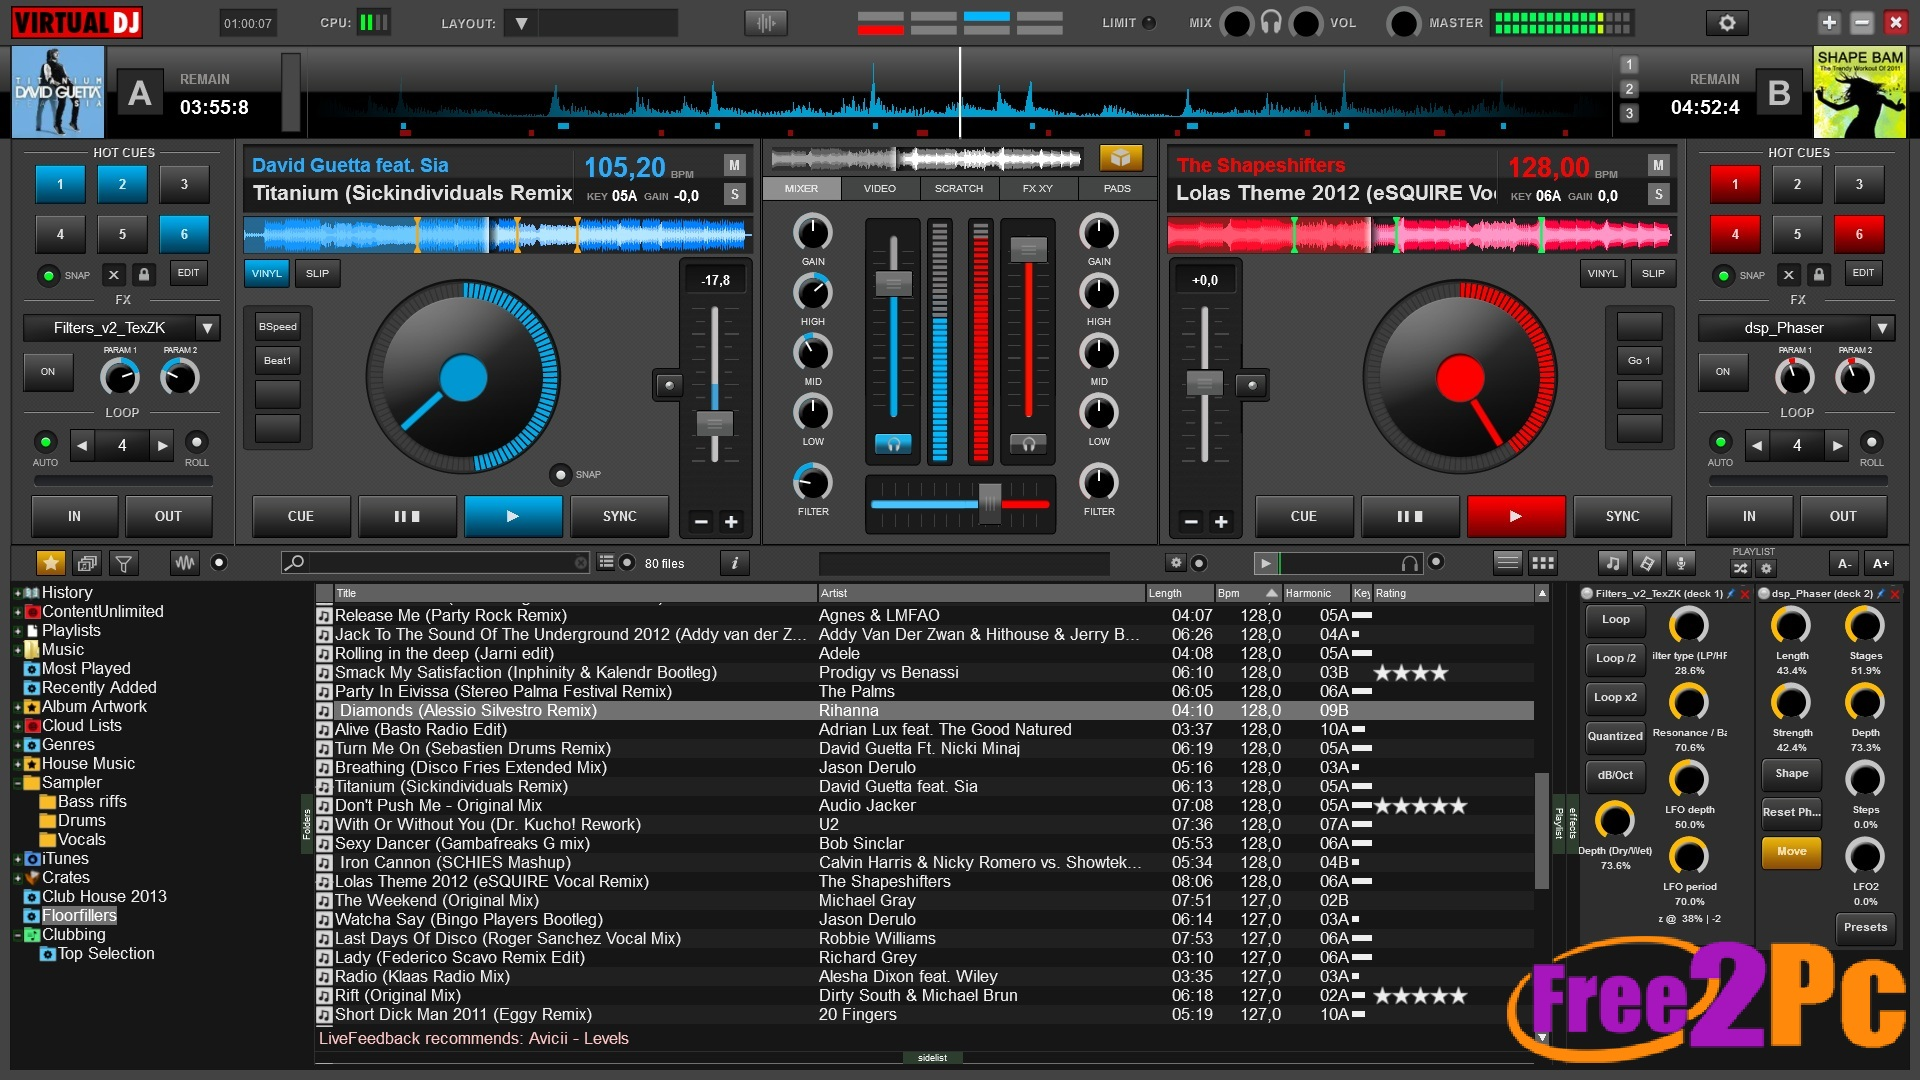 virtual dj 8  full version crack pc